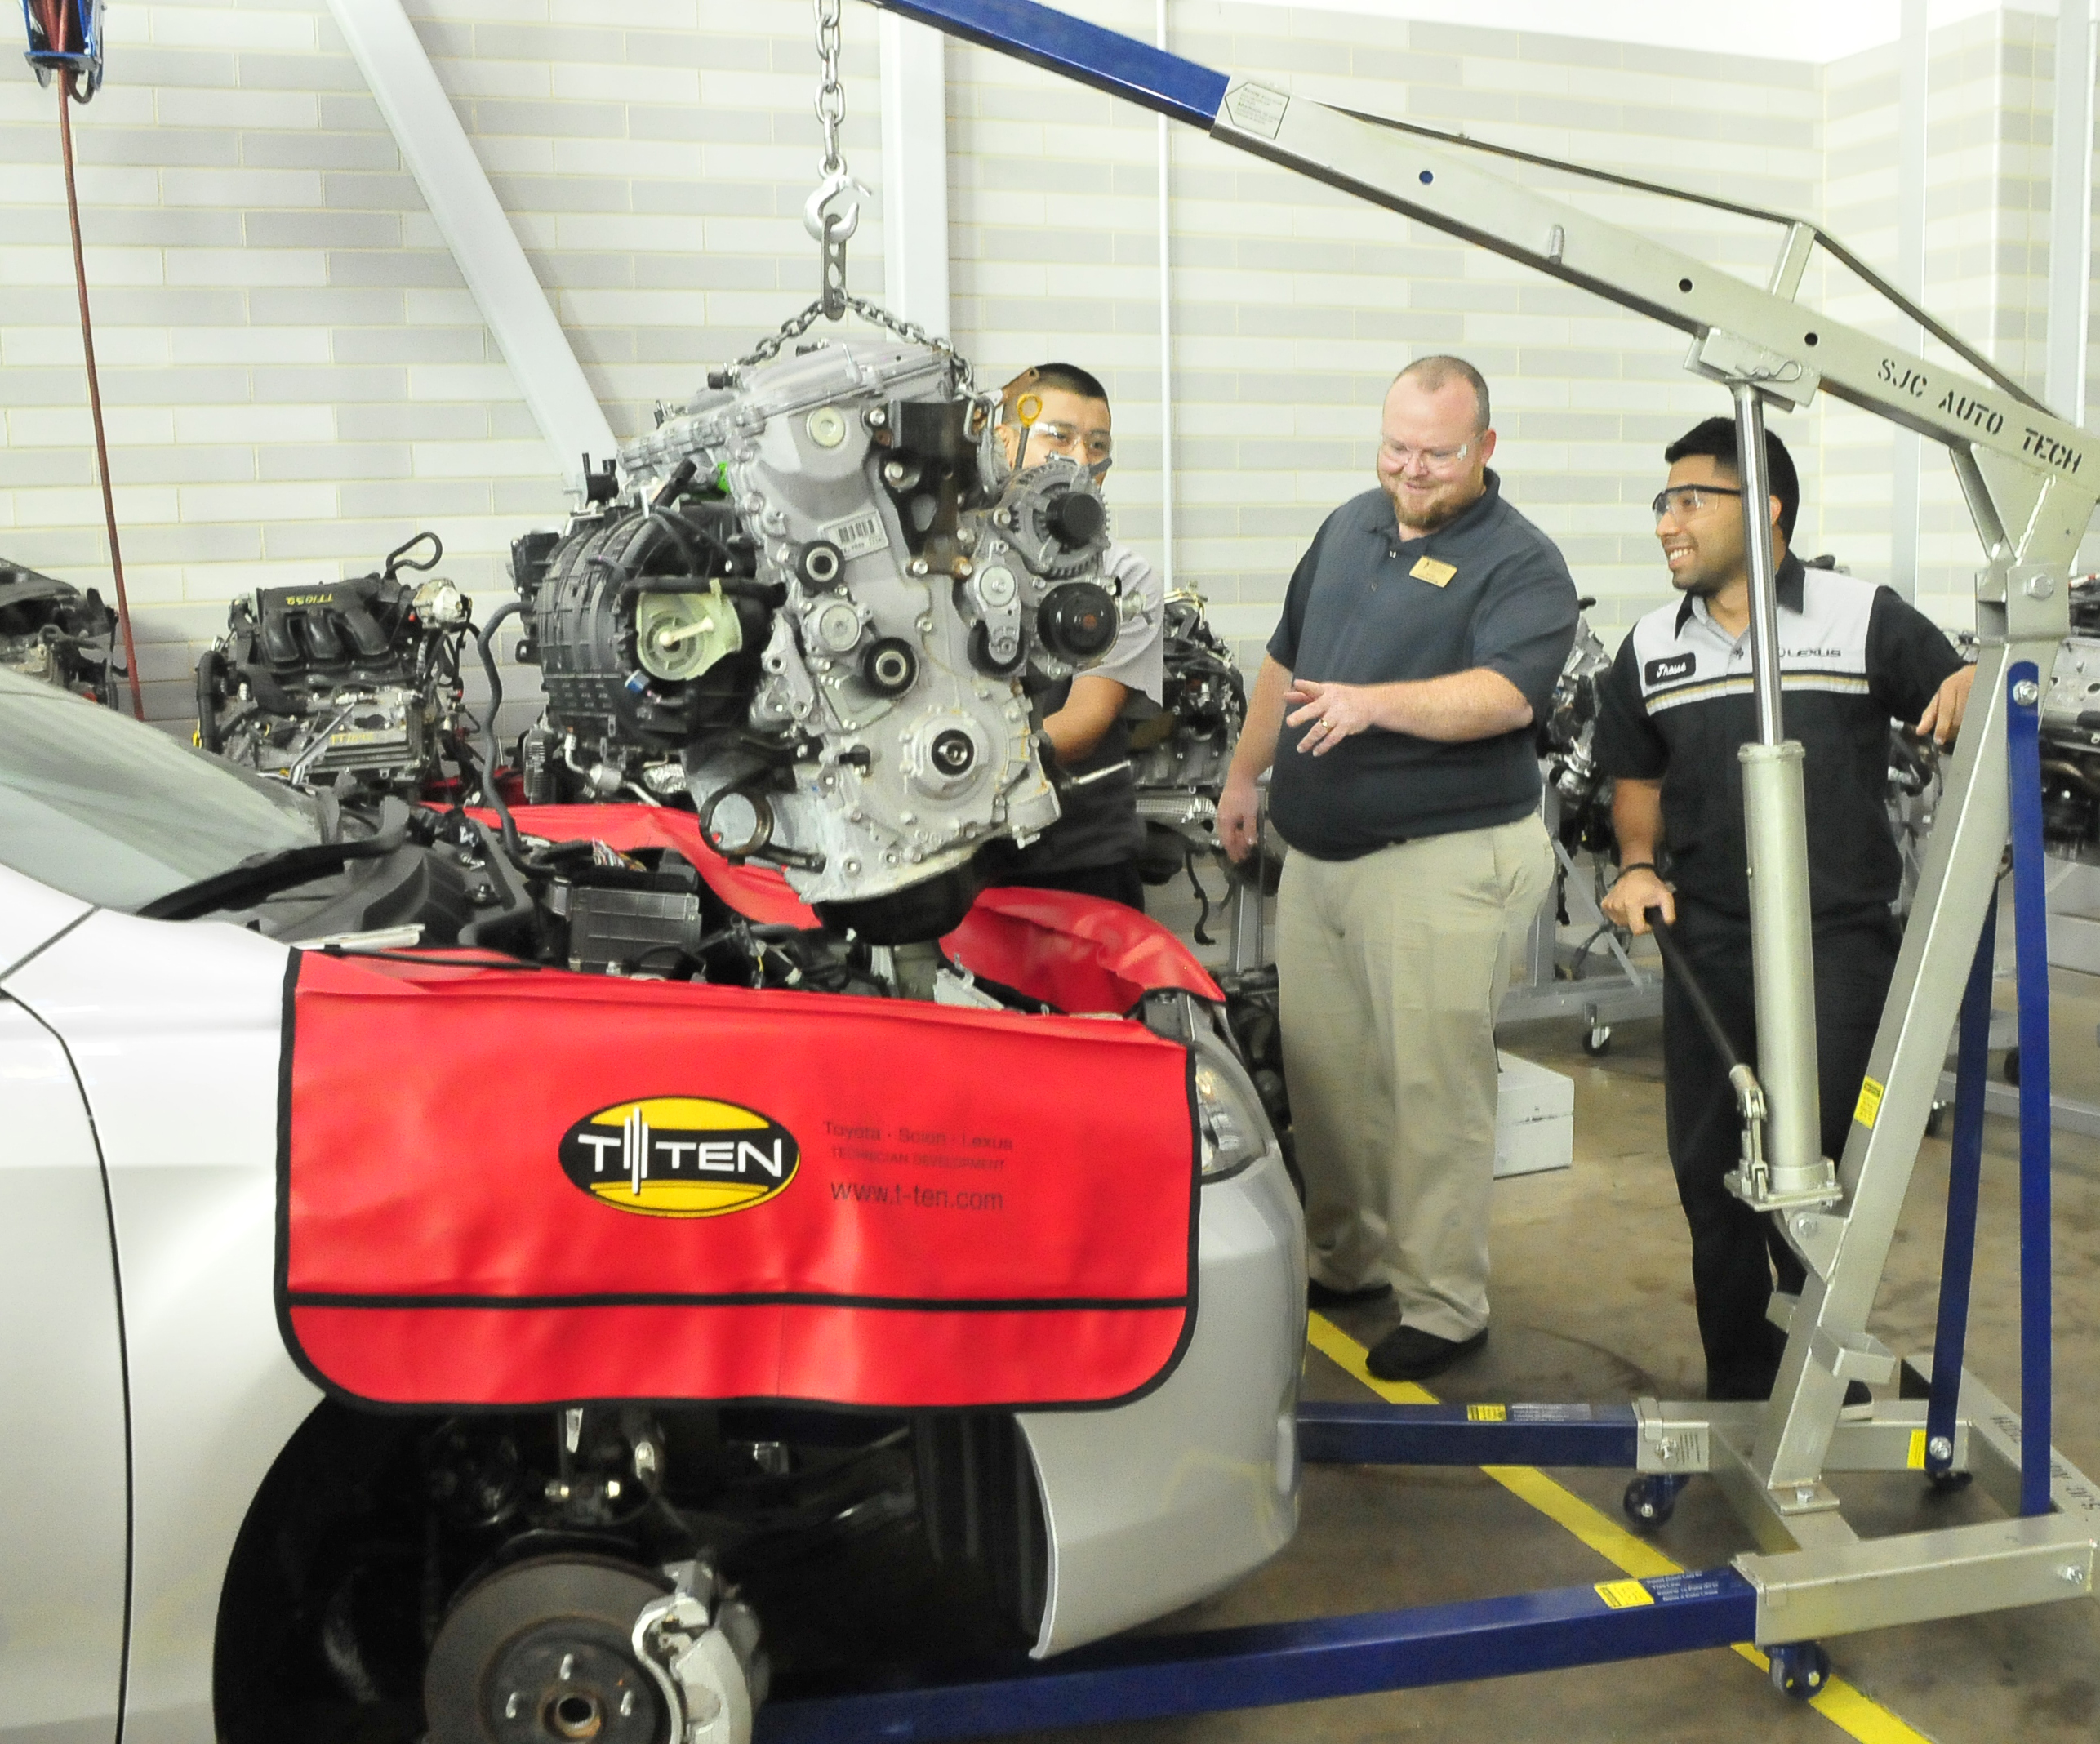 Toyota Technician Training & Education Network program achieves Entrée status